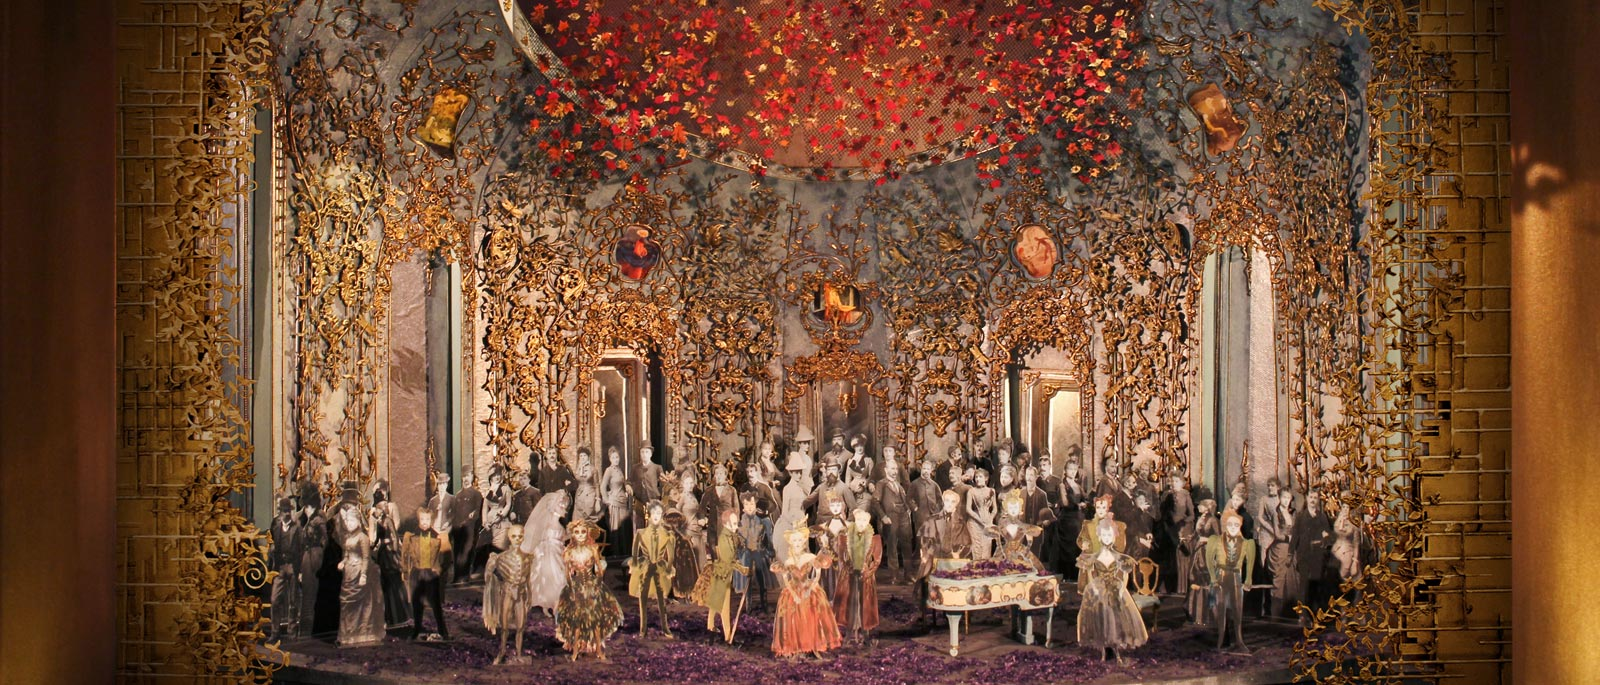 The Metropolitan Opera's New Production of LA TRAVIATA, featured on our weekend tour.